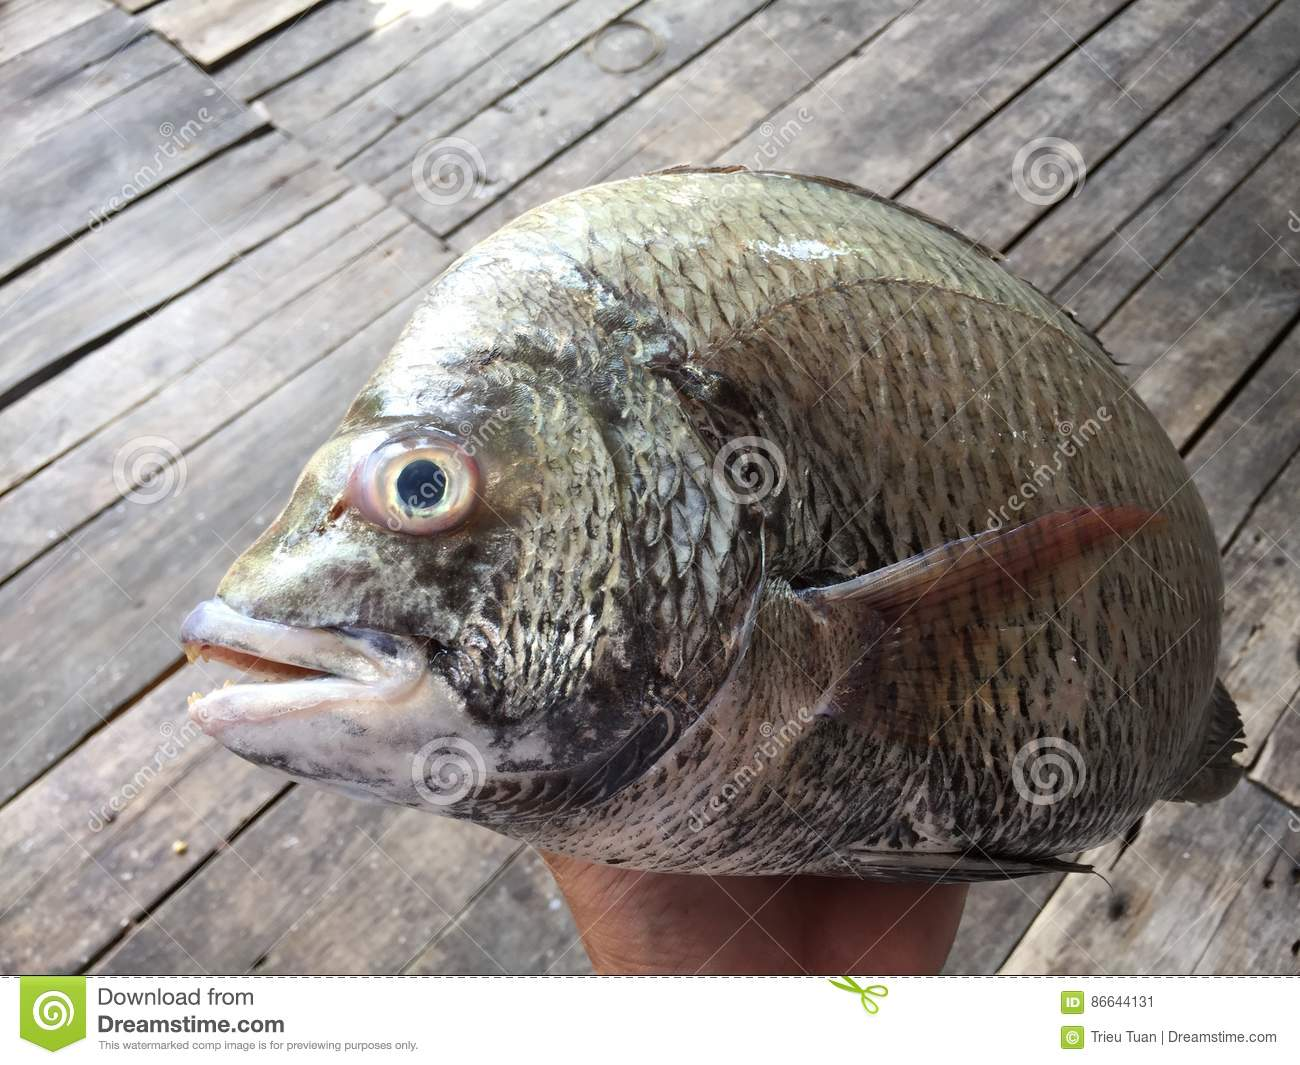 The sheepshead, scup, and red/black seabream, Pagrus major